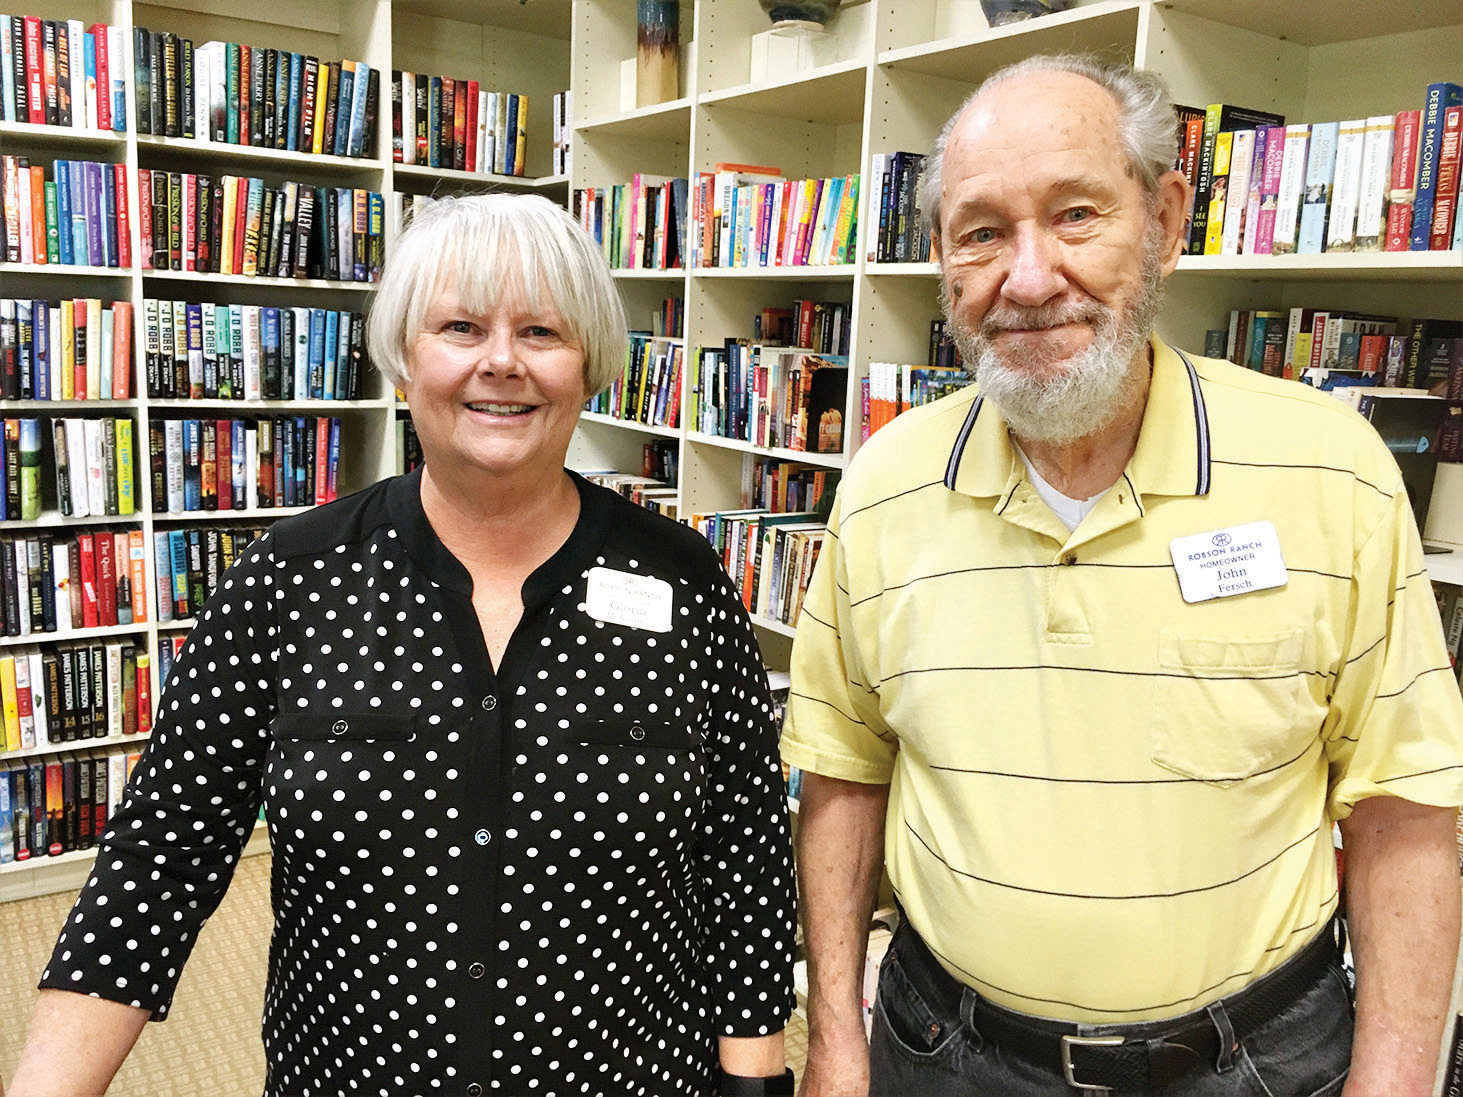 Gloria McKinney and John Fersch are among Tuesday's library workers.